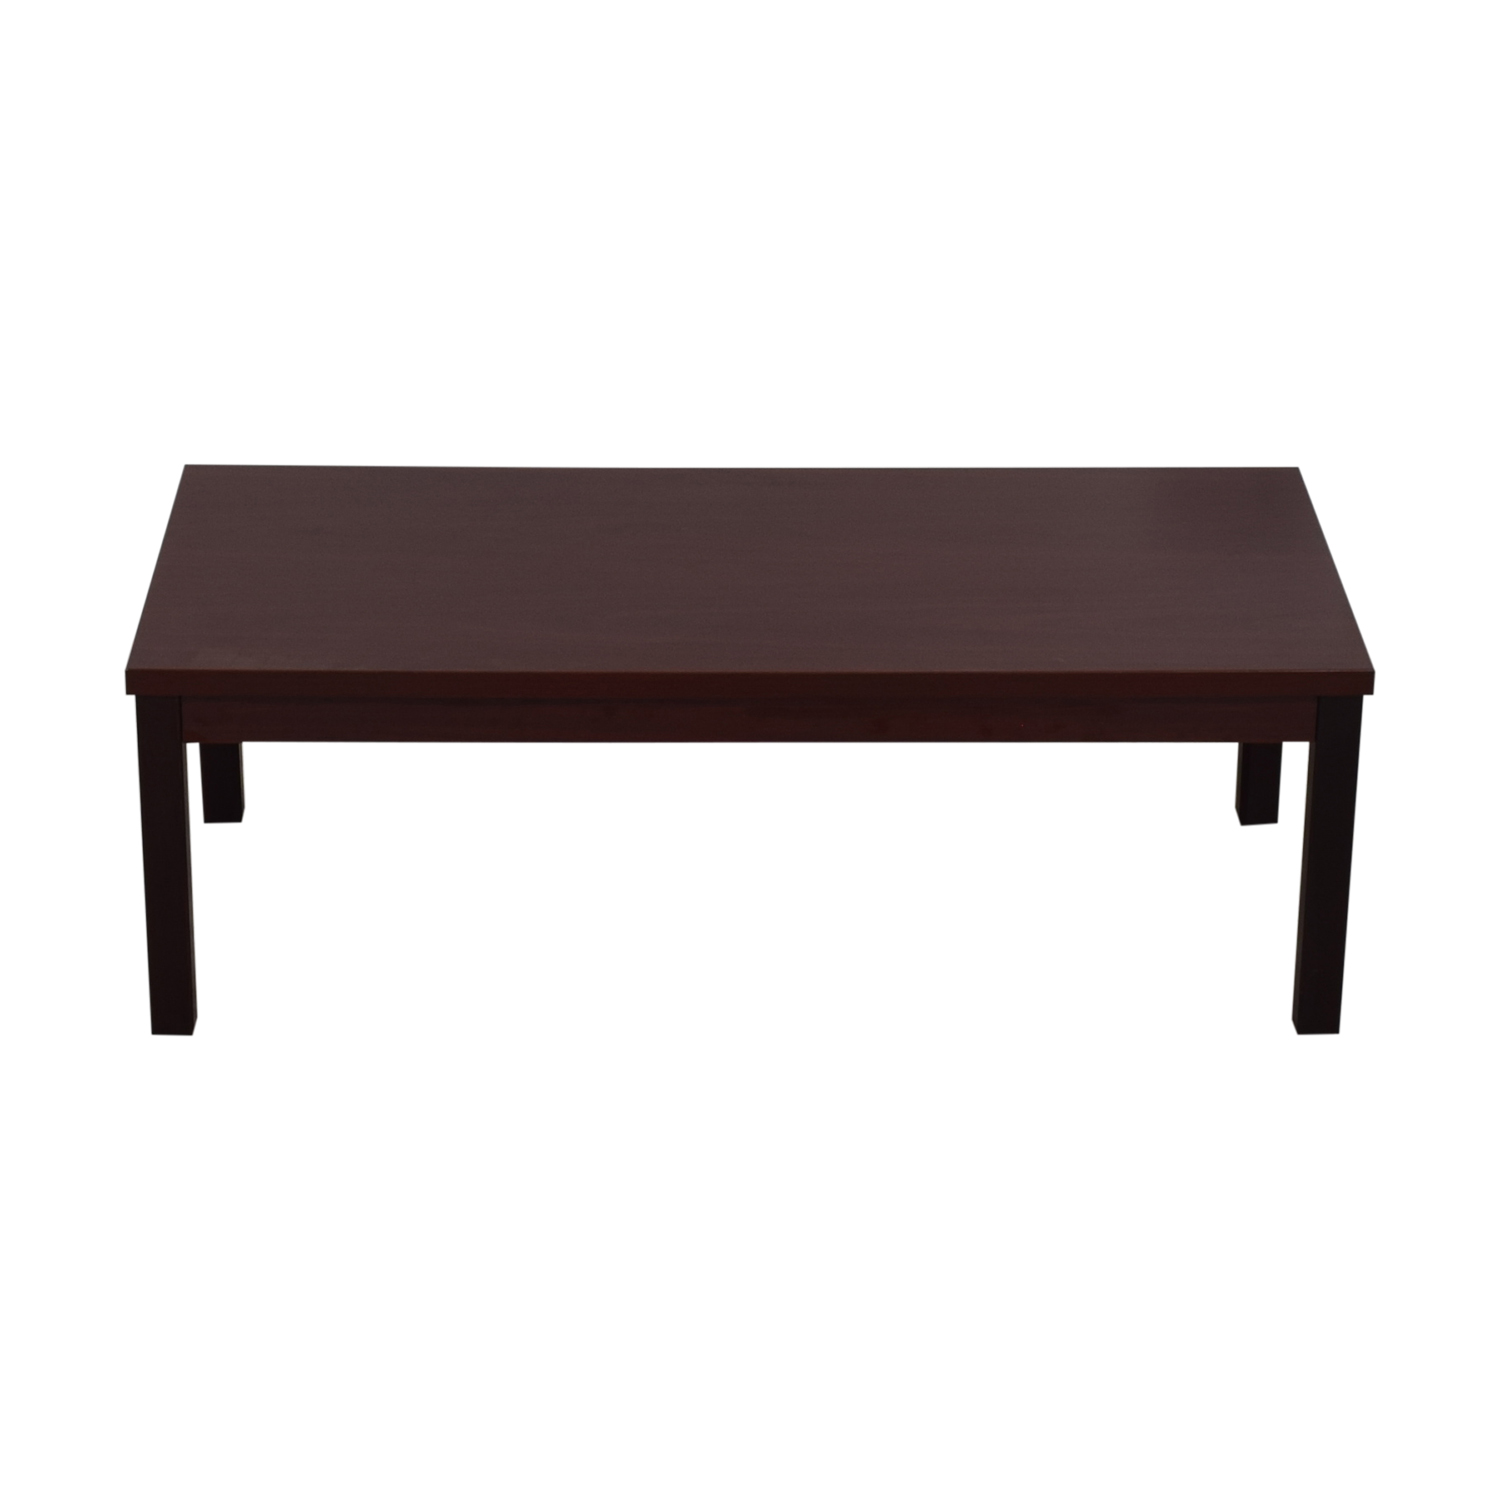 HON Furniture HON Furniture Coffee Table coupon